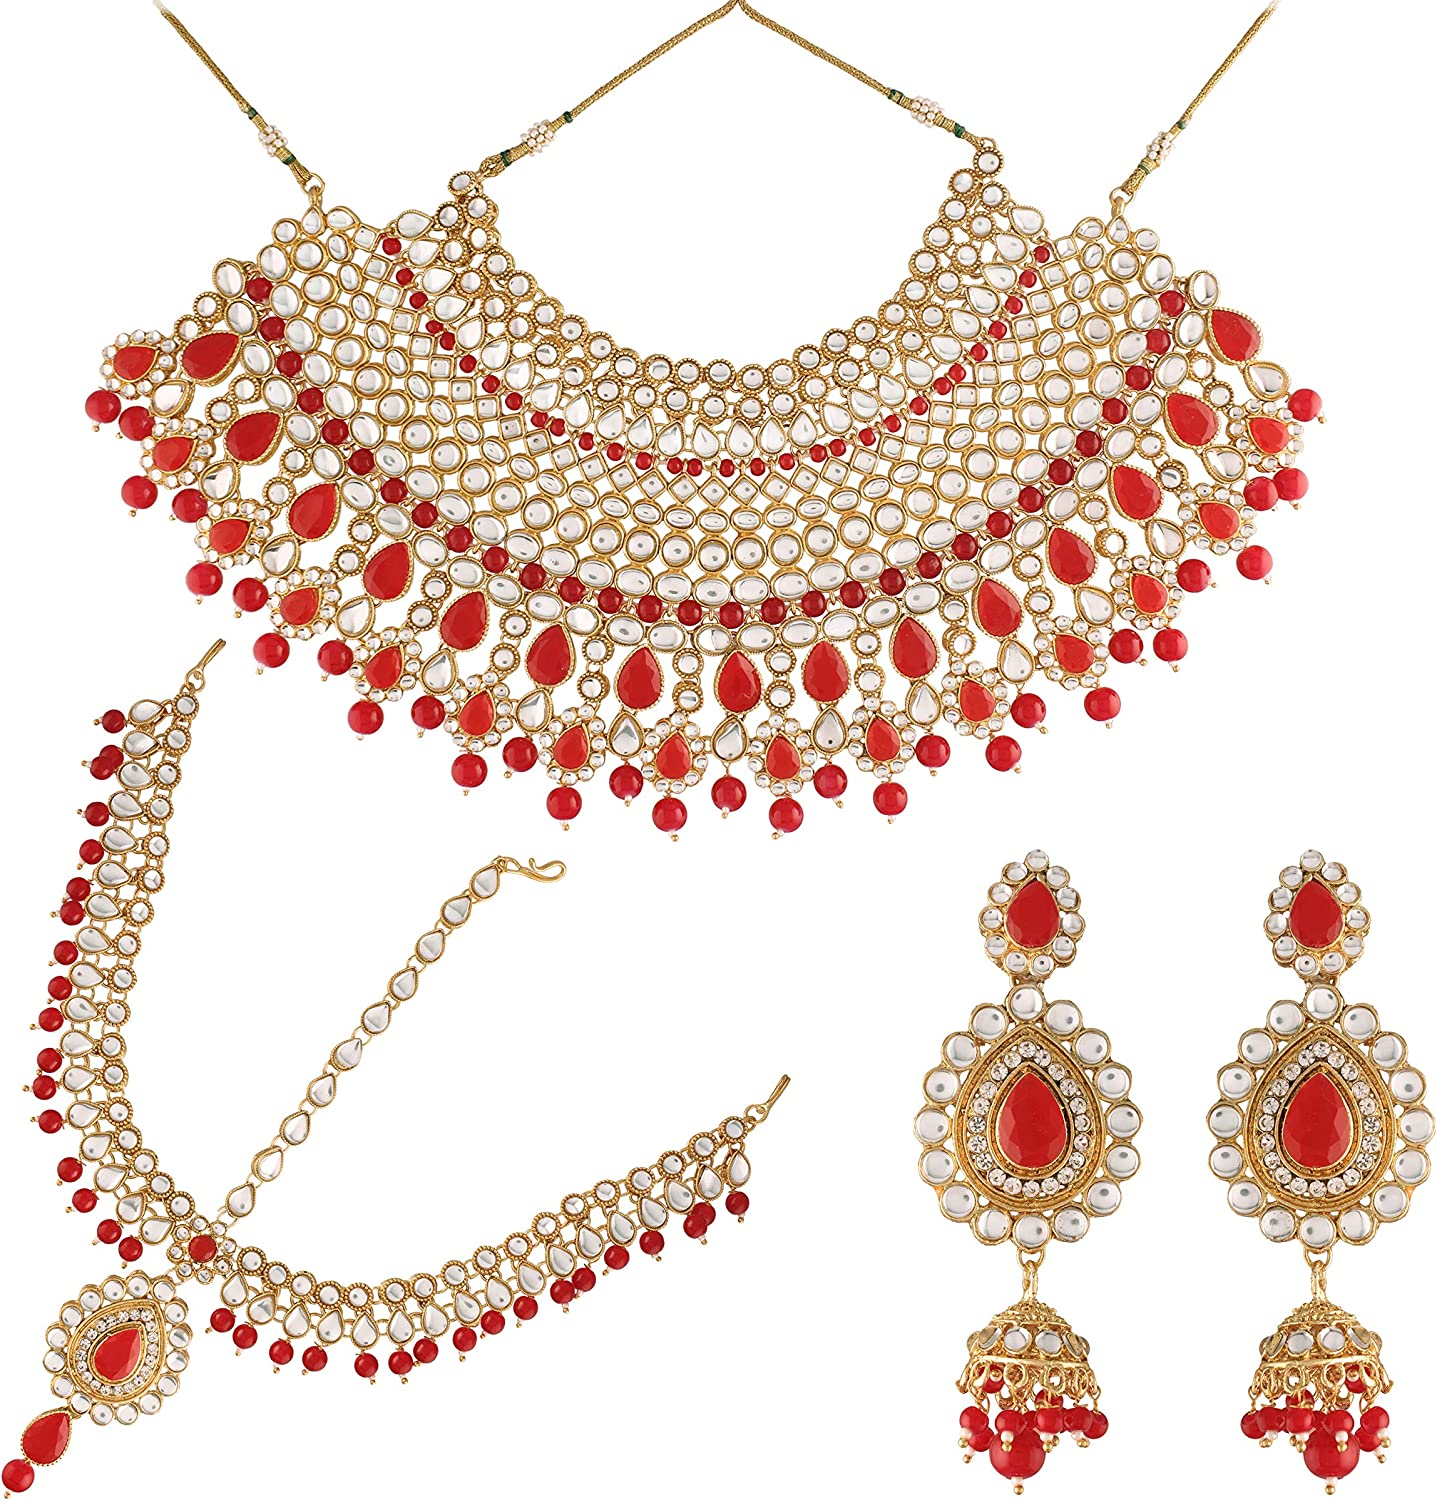 I Jewels 18K Gold Plated Traditional Handcrafted Faux Kundan Studded Bridal Jewellery Set Emblazoned with Earrings & Maang Tikka (IJ327R)